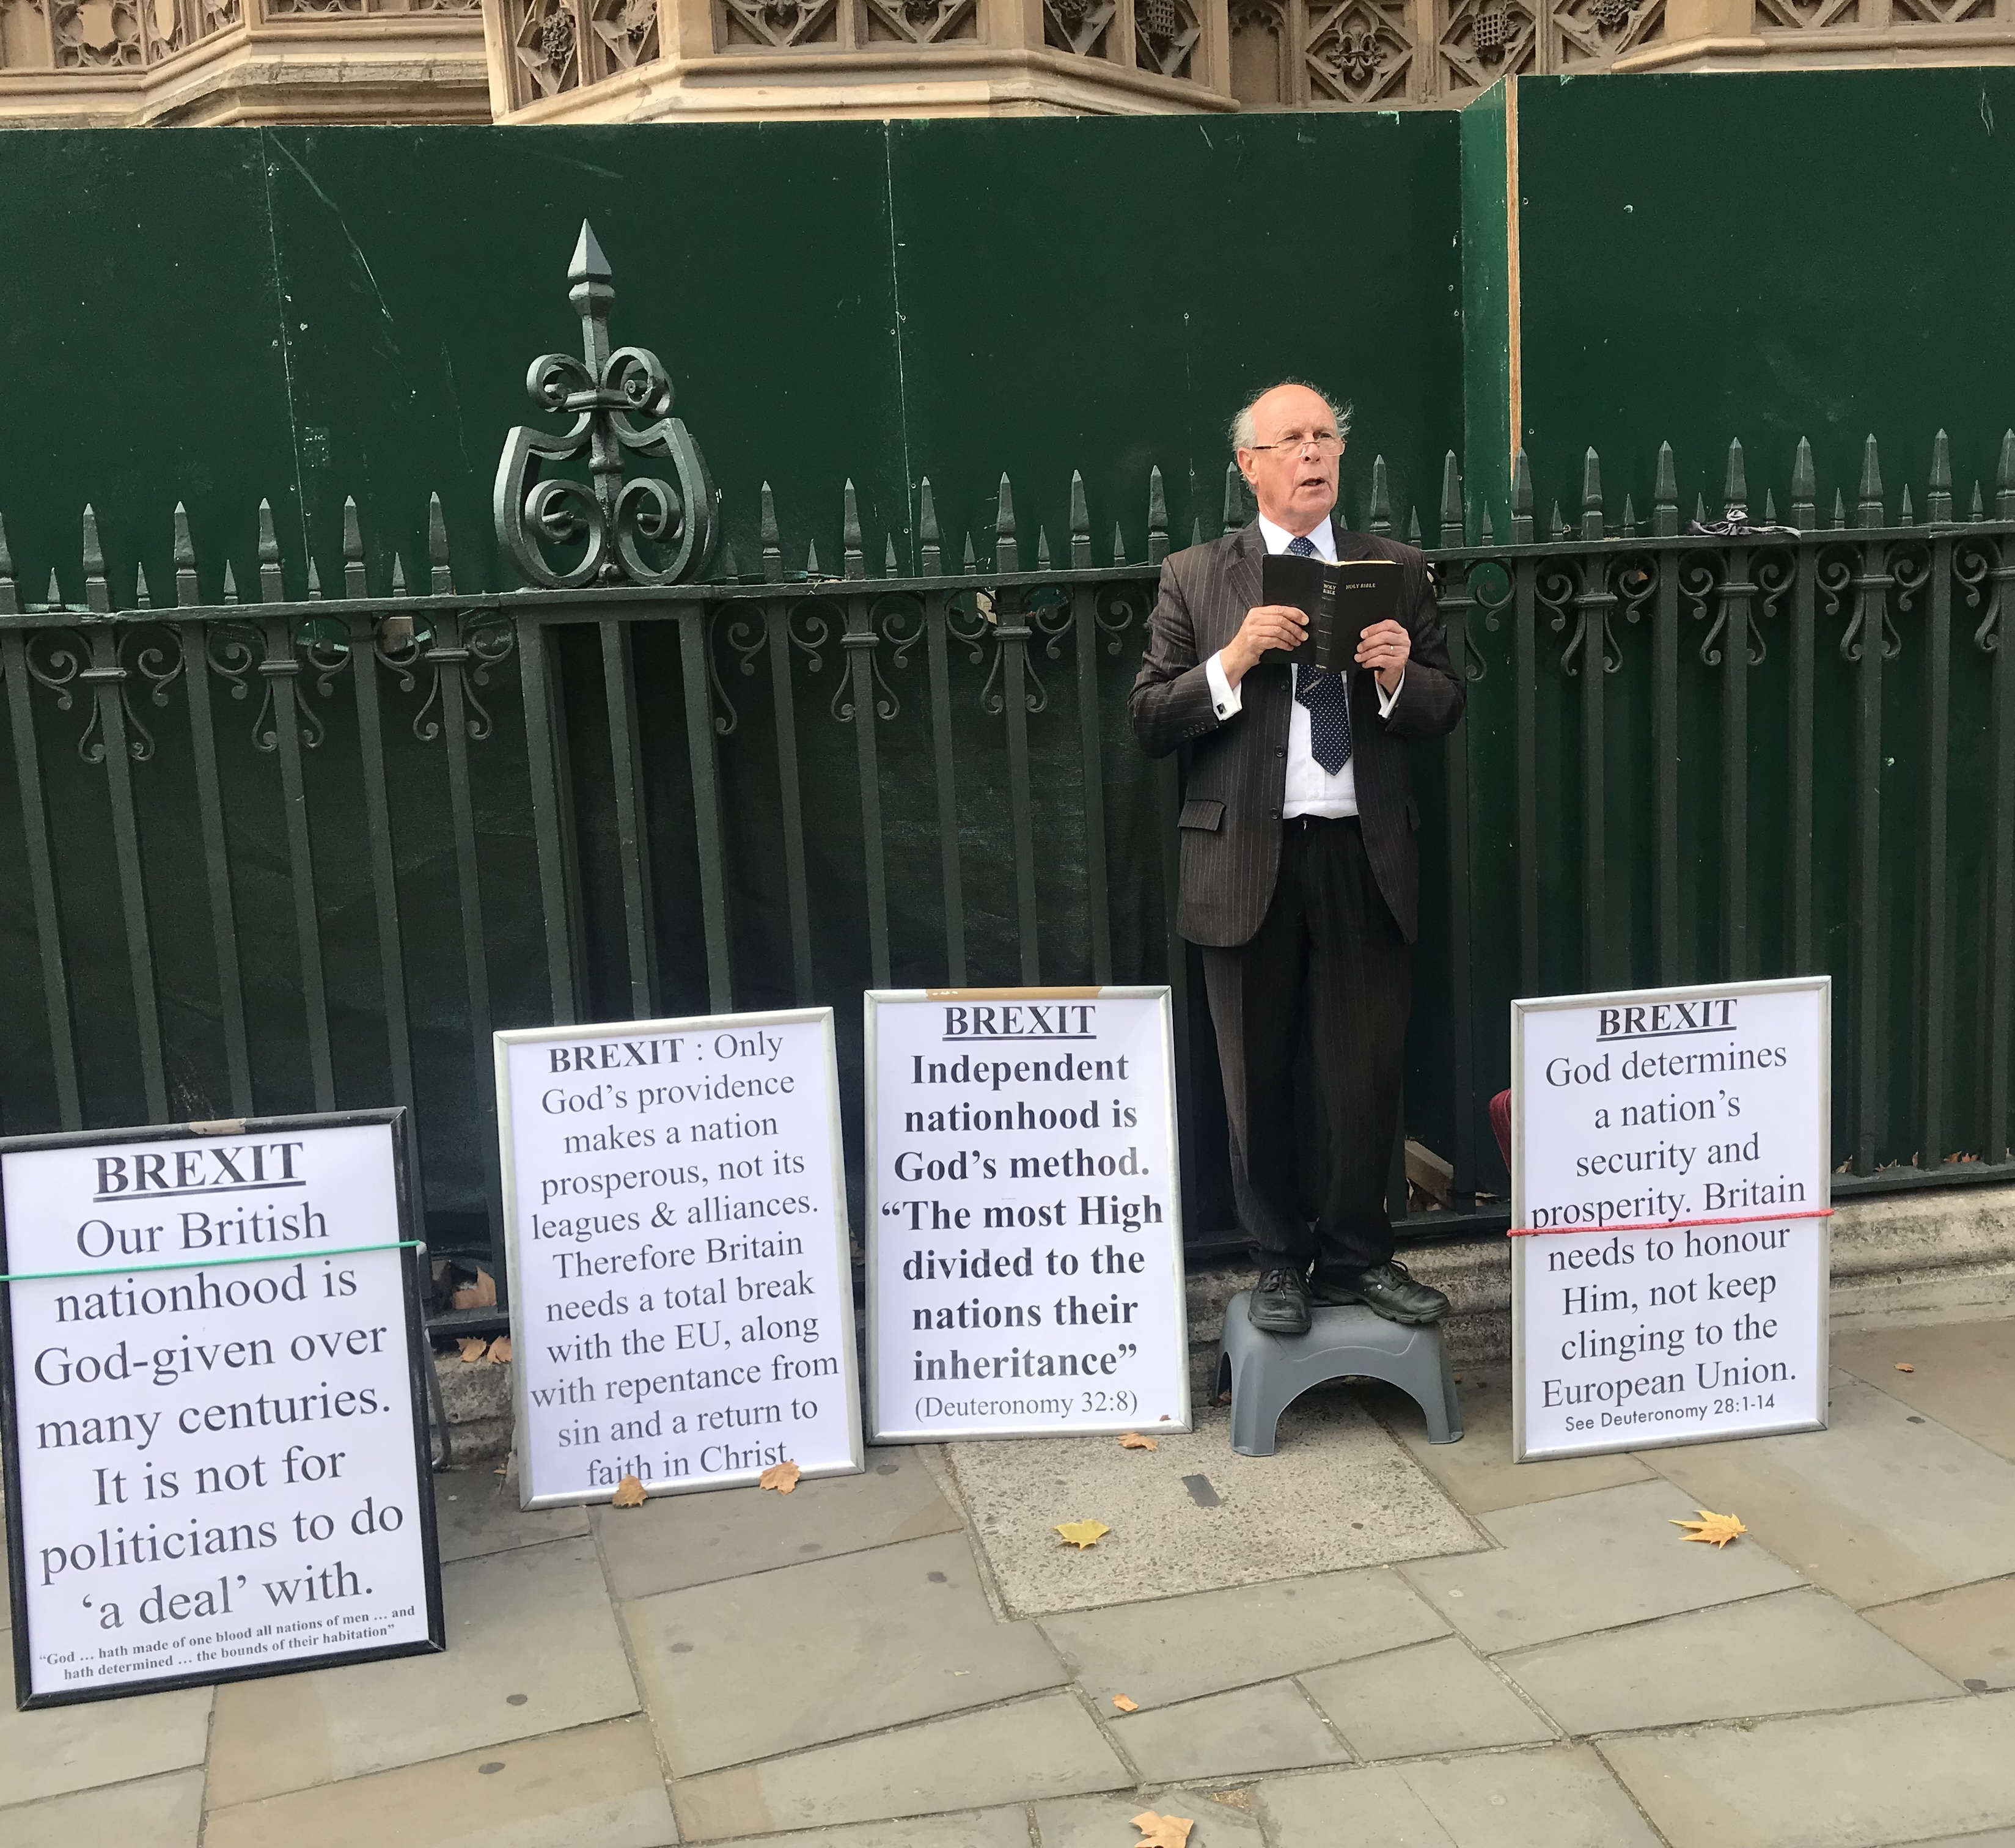 House of Commons witness : National repentance, not EU membership, is the way to secure a prosperous future